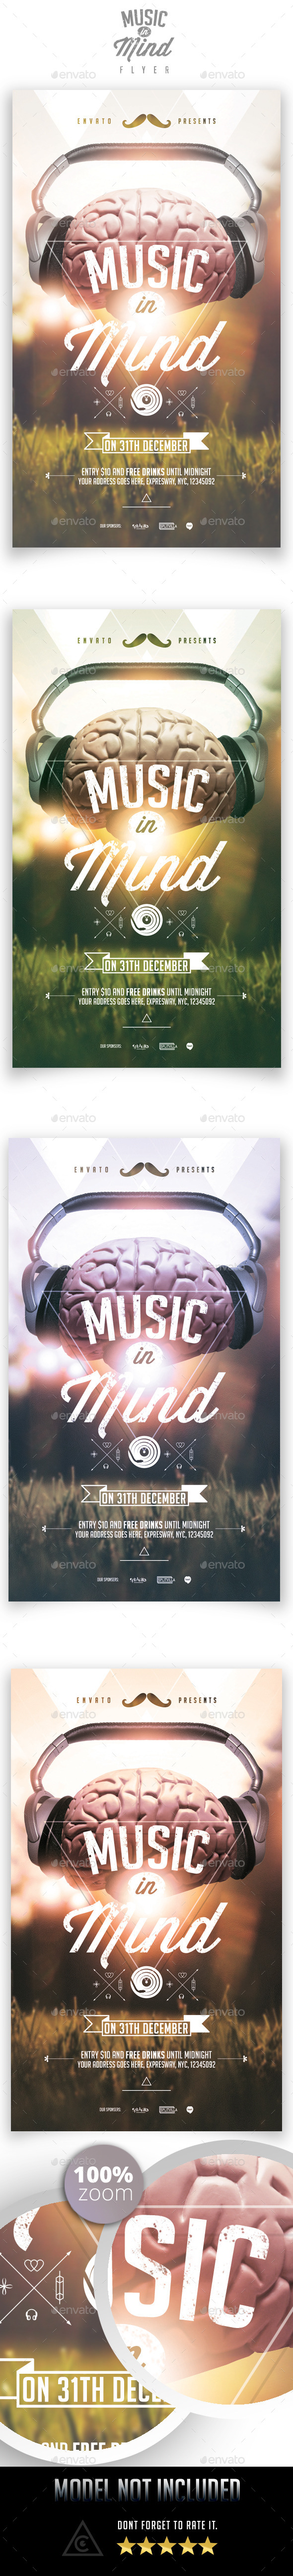 Music in Mind Flyer Template - Clubs & Parties Events